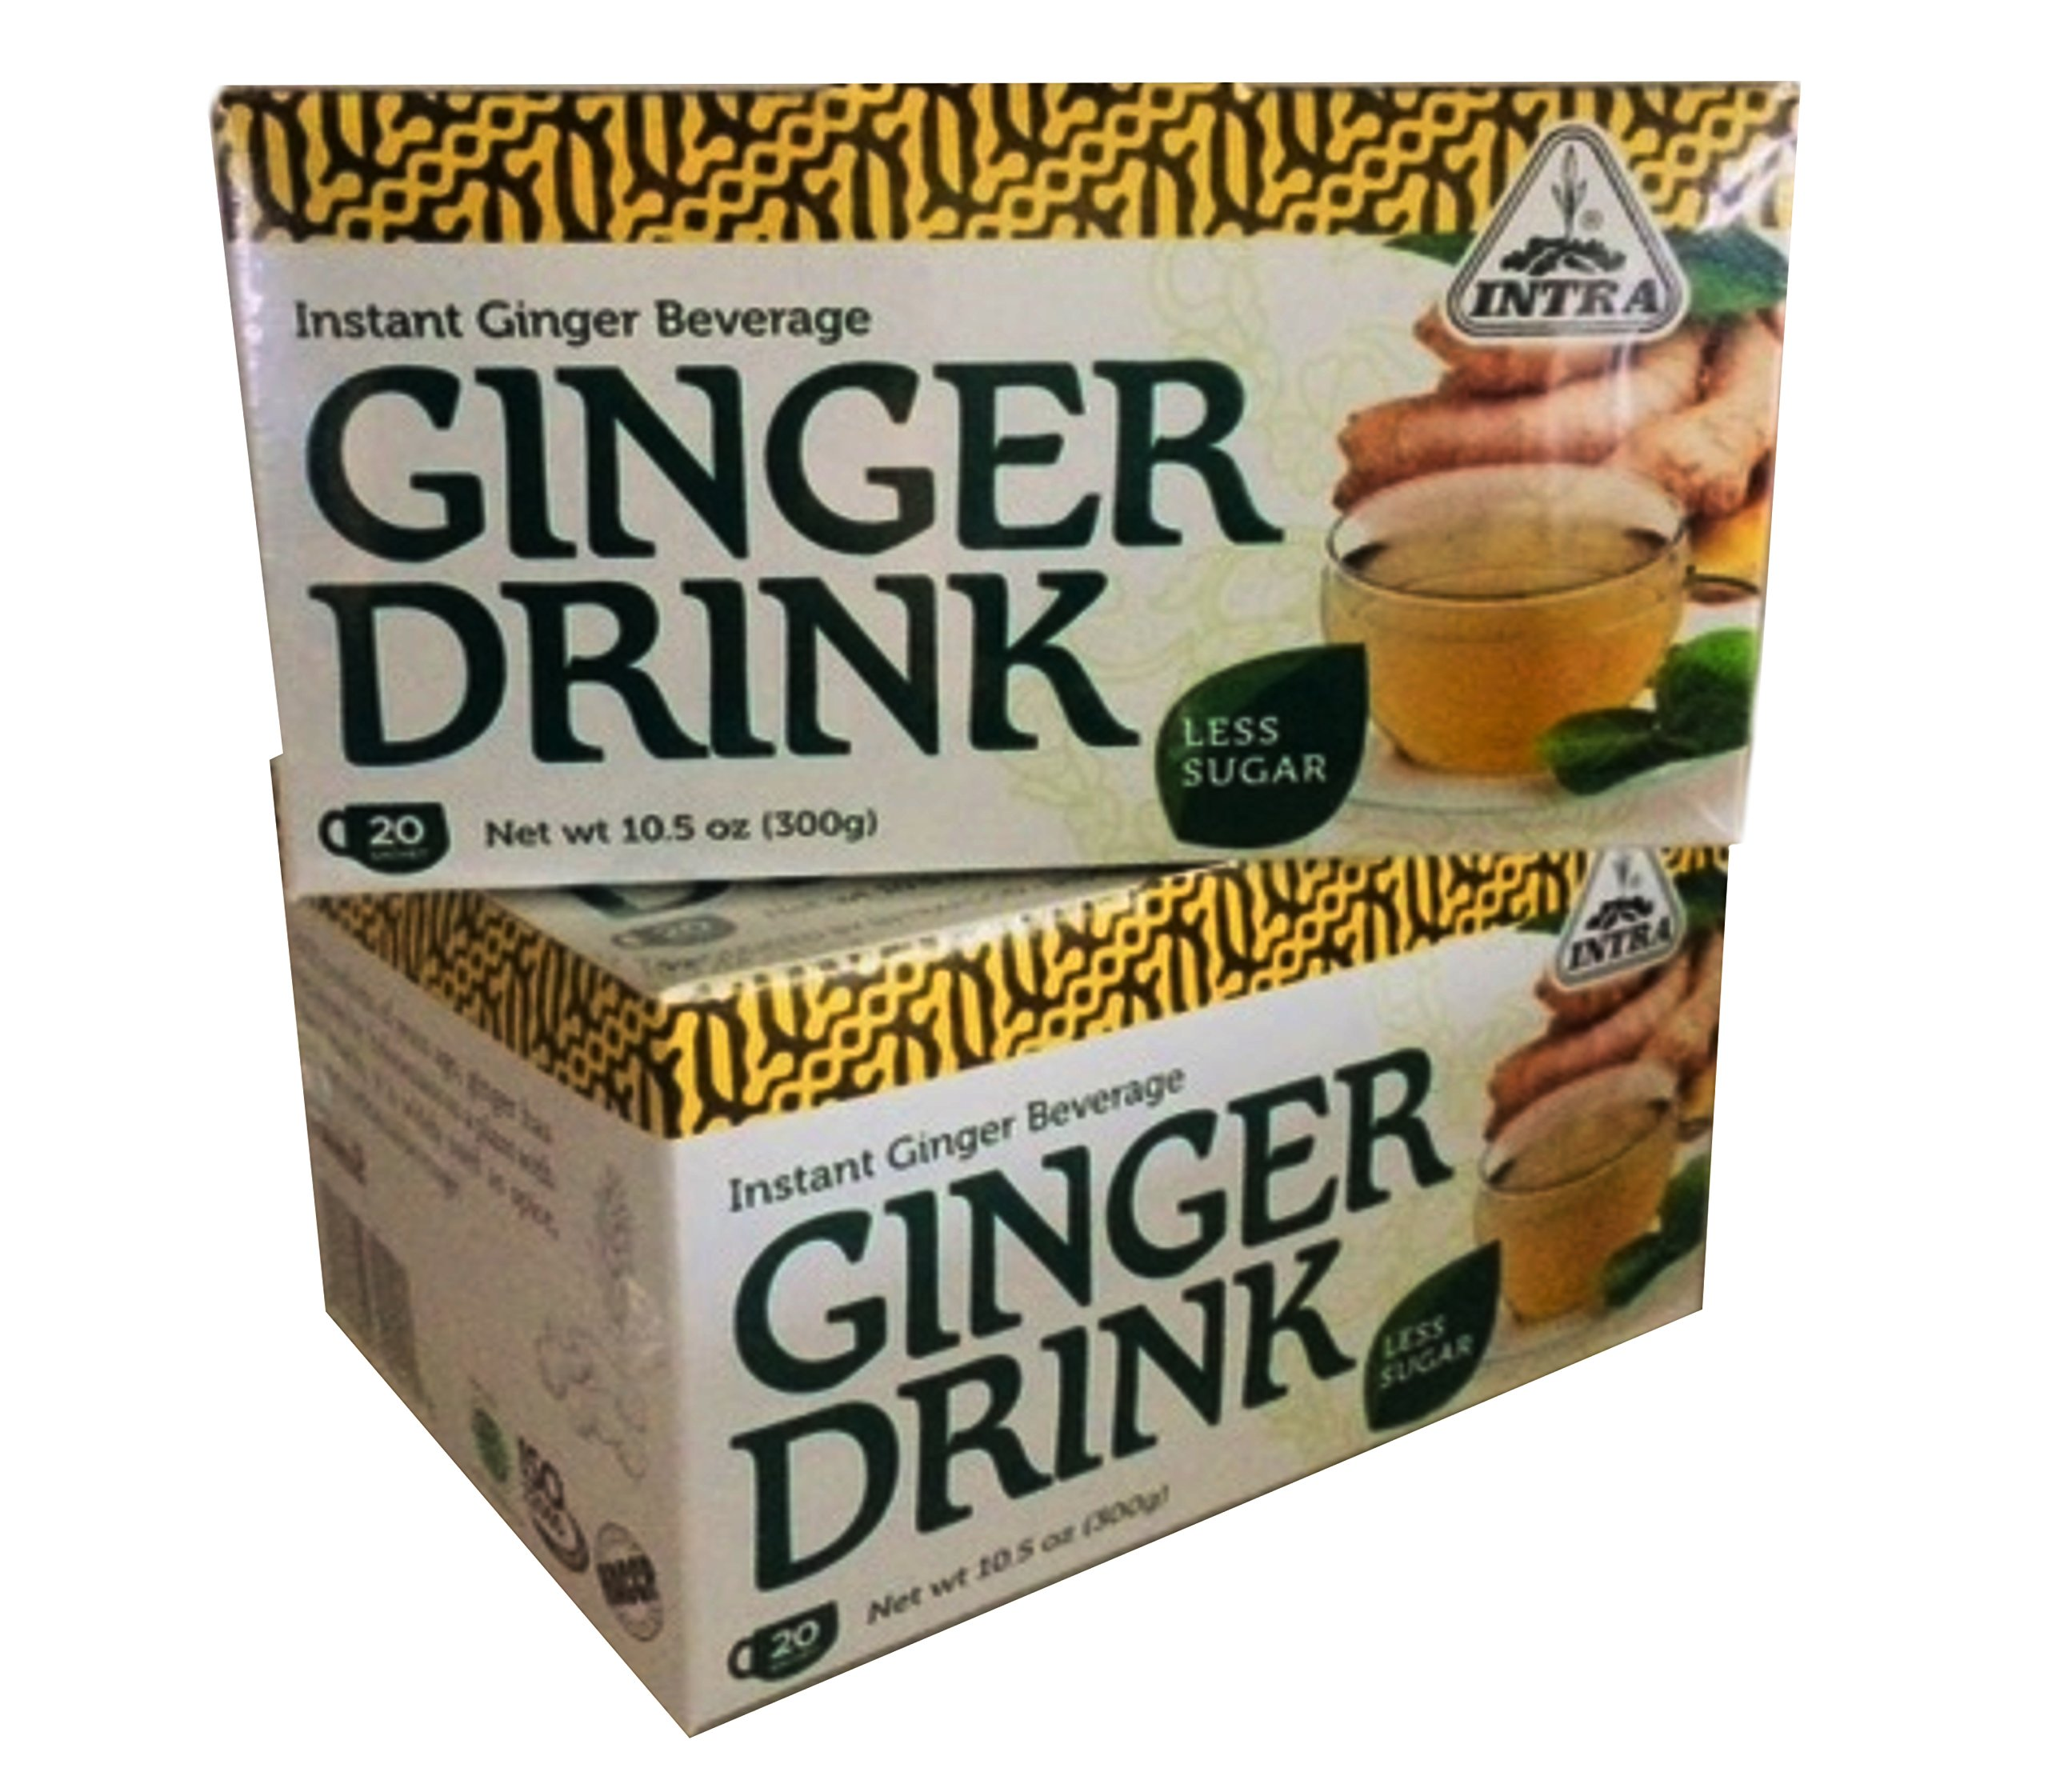 Intra Intant Ginger Drink Less Sugar, 10.5oz, 20-sachet per pack, (Pack of 2) by World Food Mission